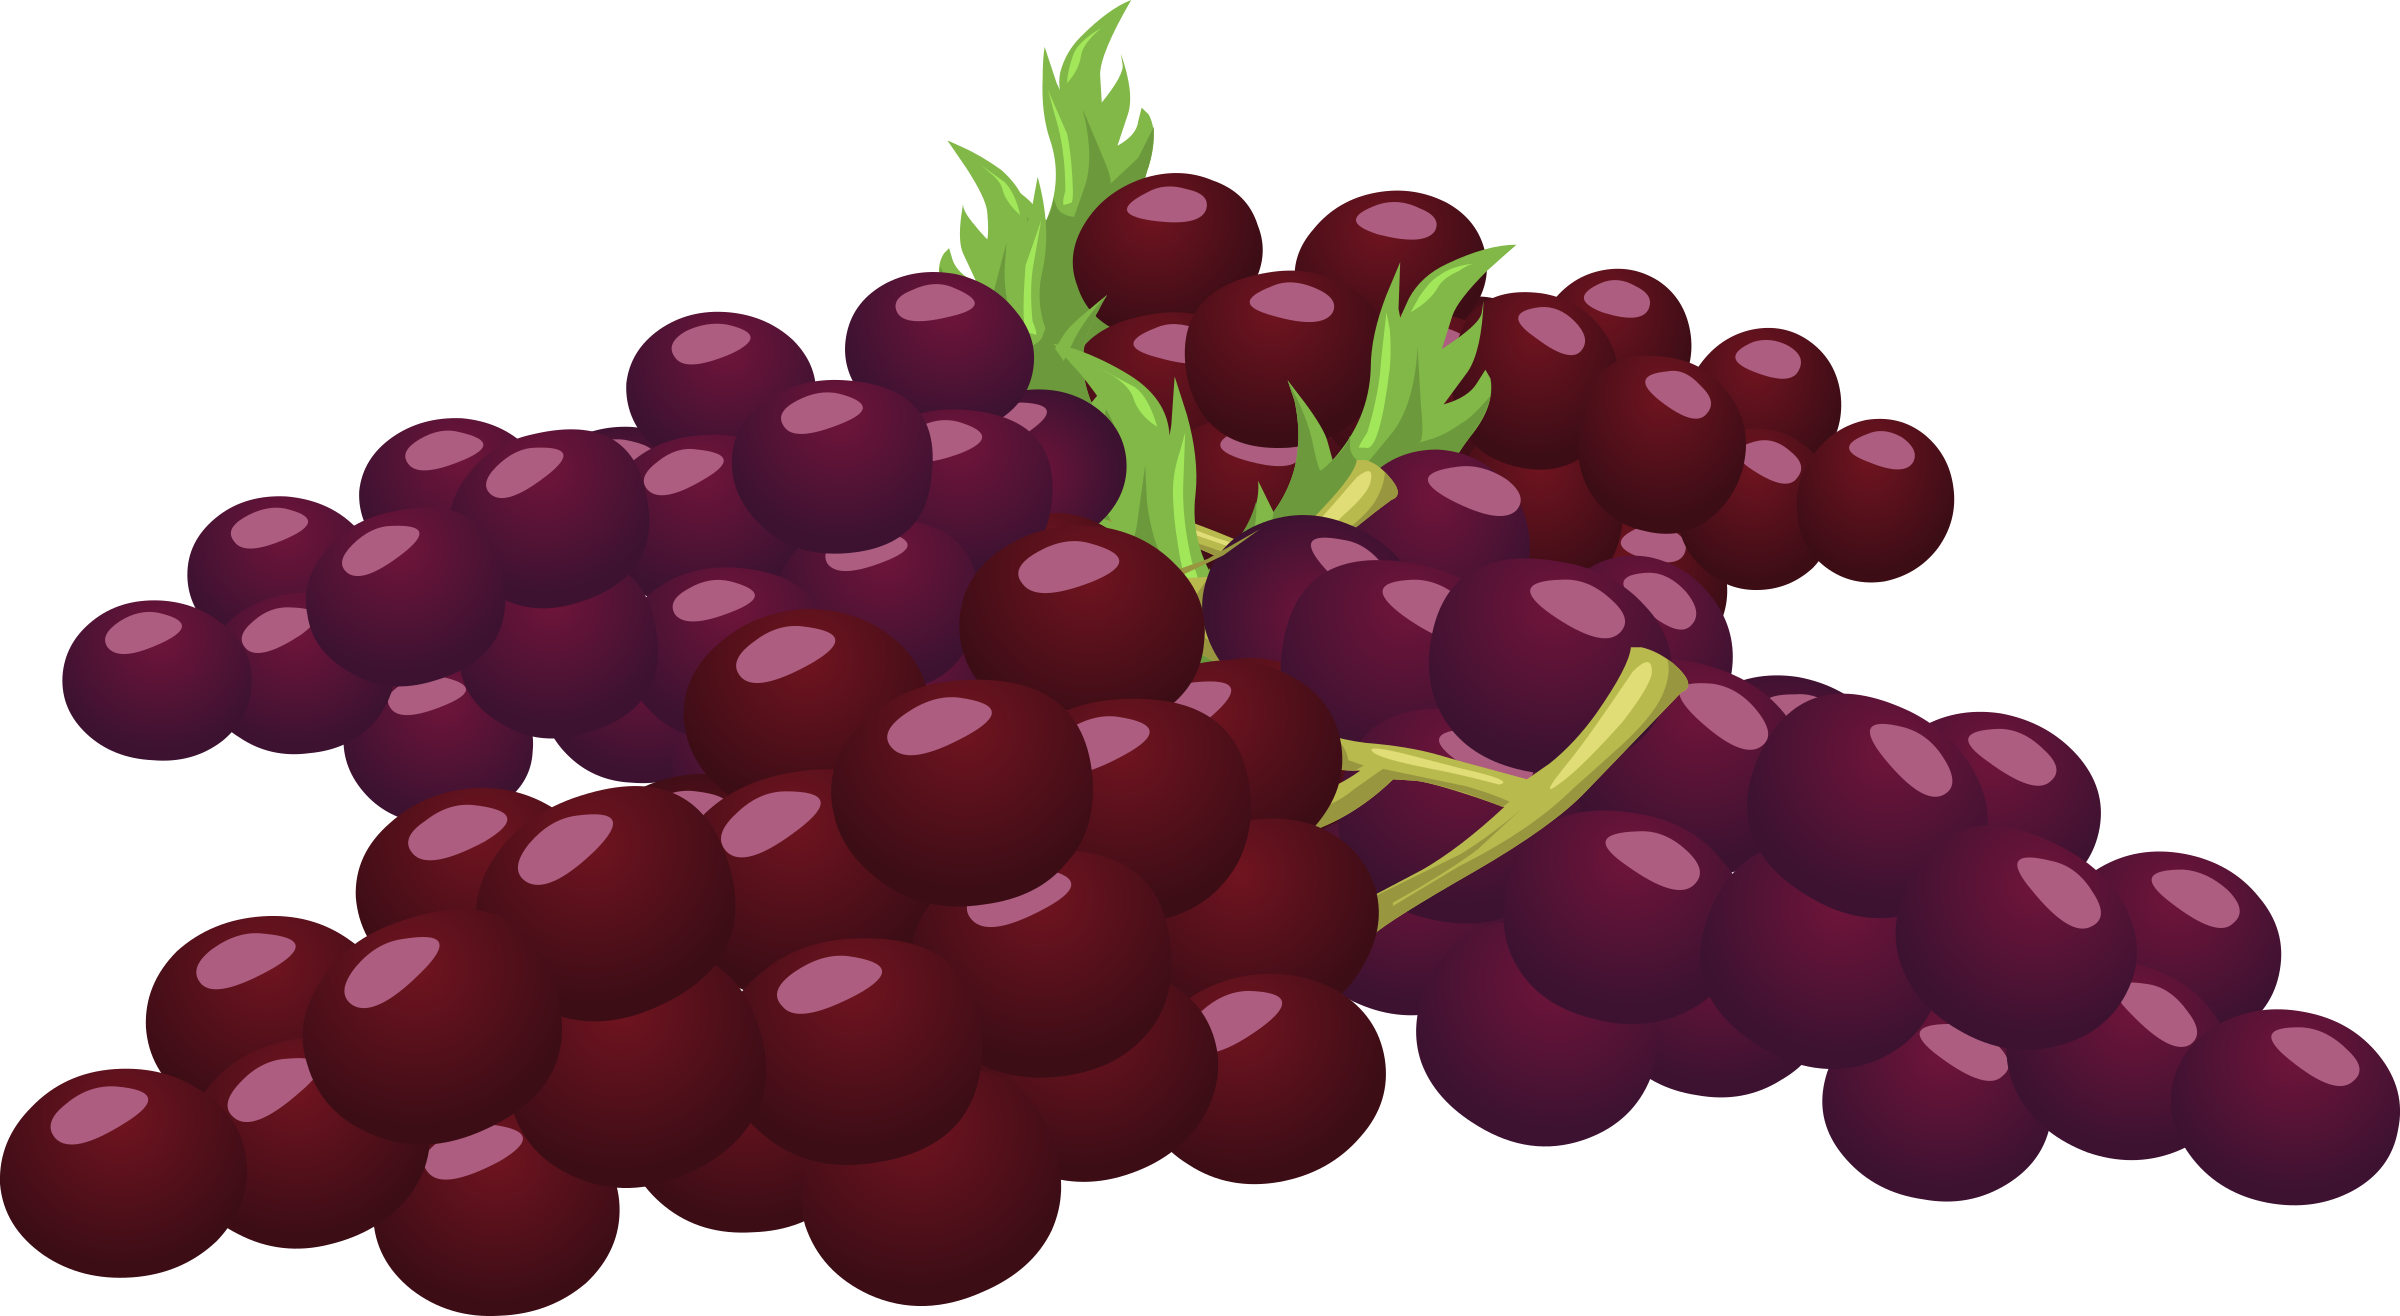 Food Bunch Of Grapes by glitch